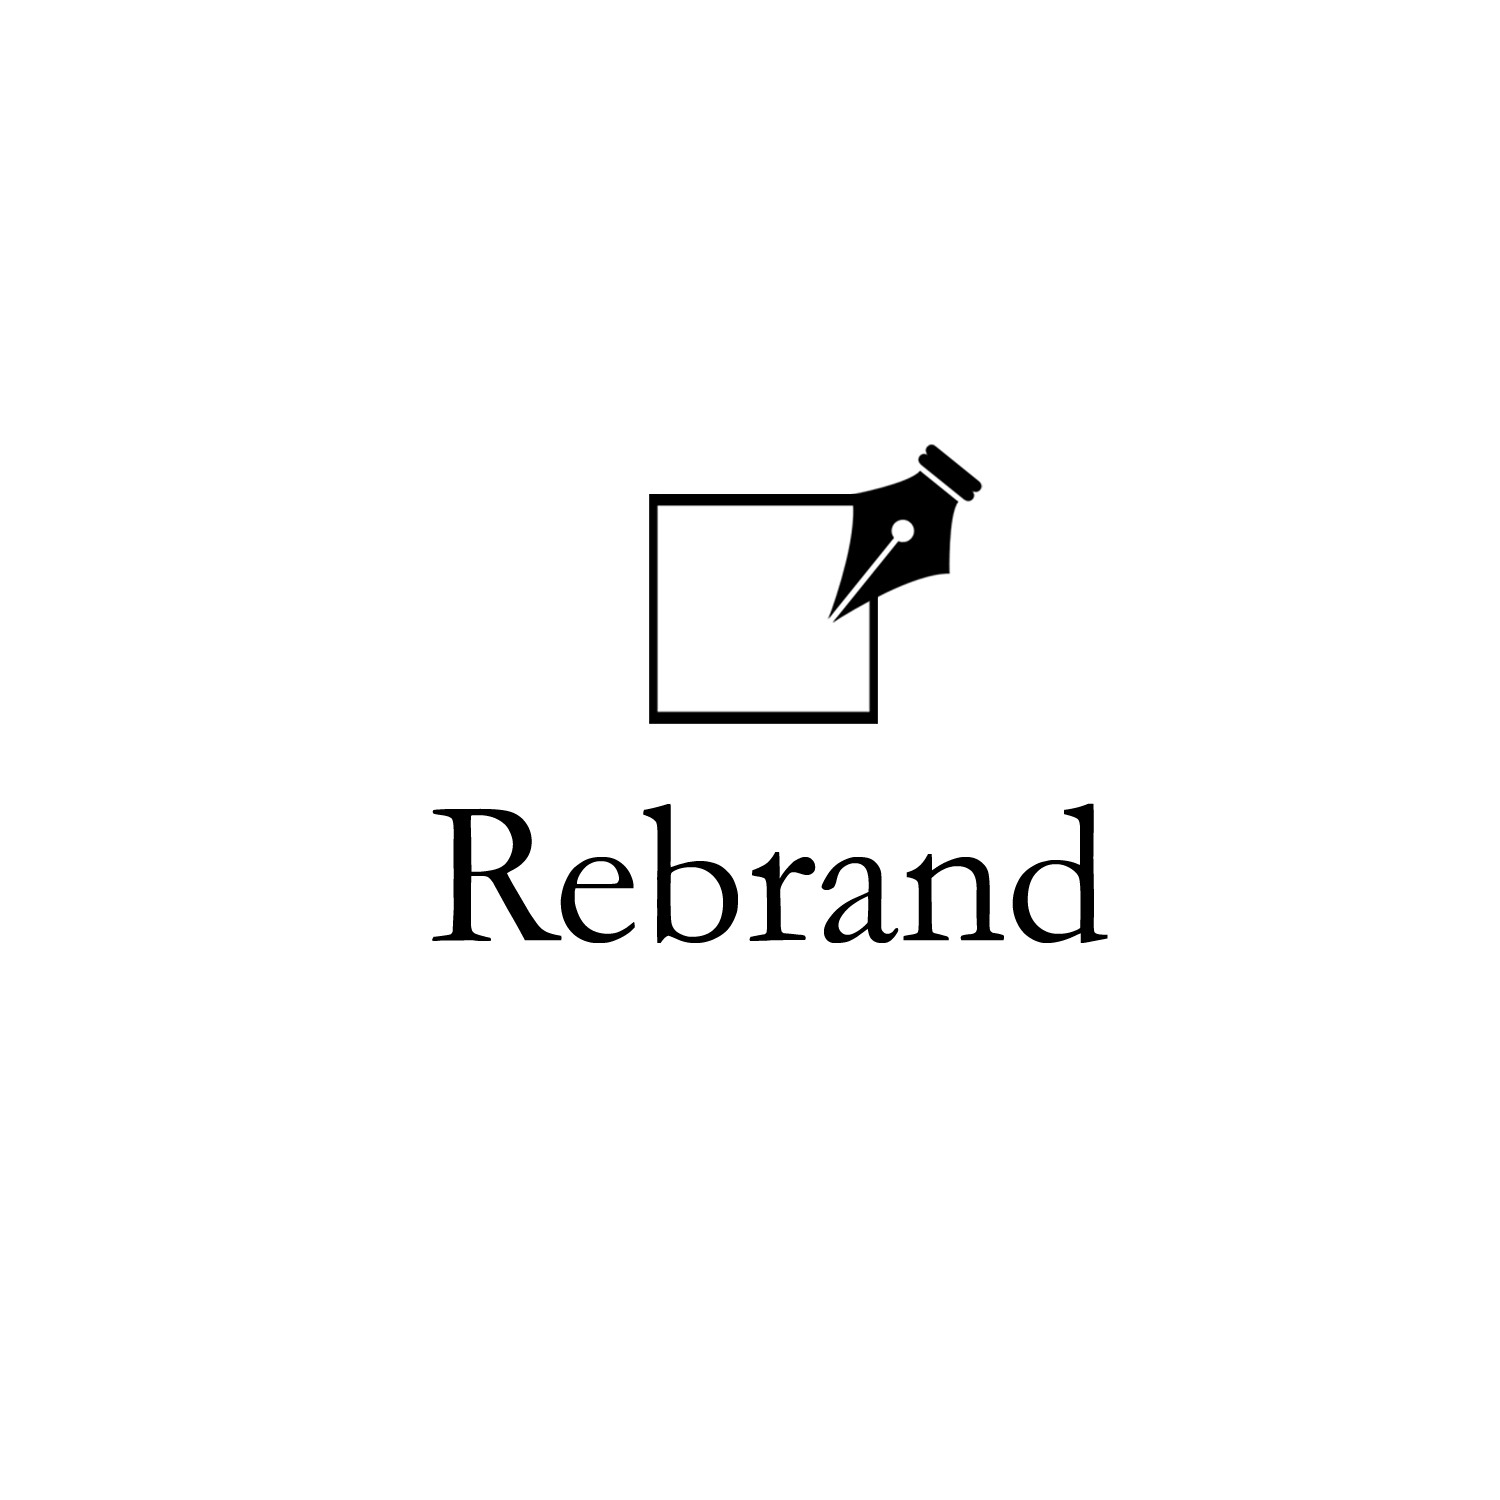 Rebrand Marketing Communications Co. Ltd.